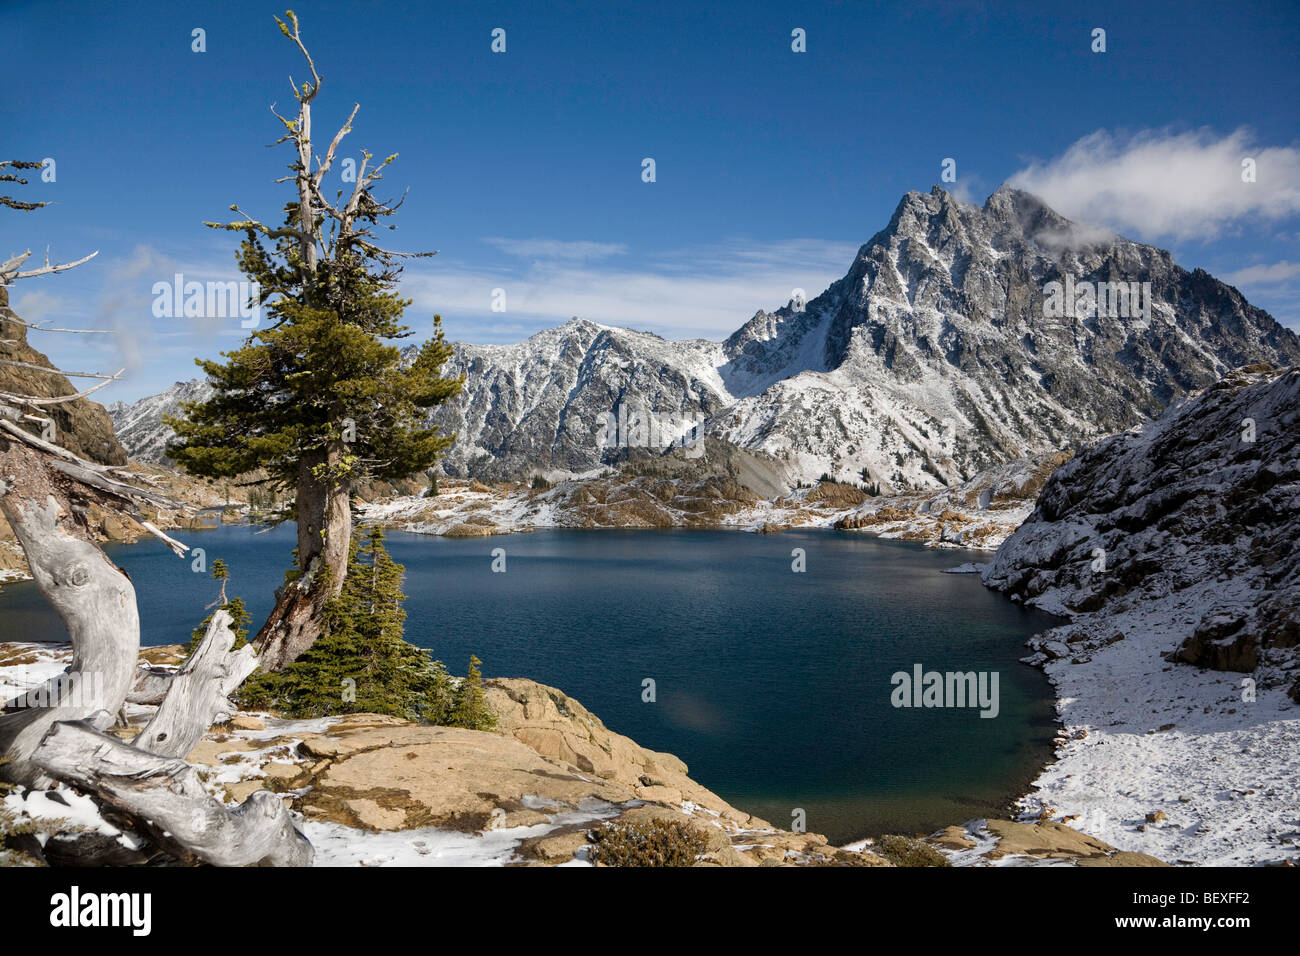 Ingalls Peak - Lake Ingalls Trail, Washington State - Stock Image